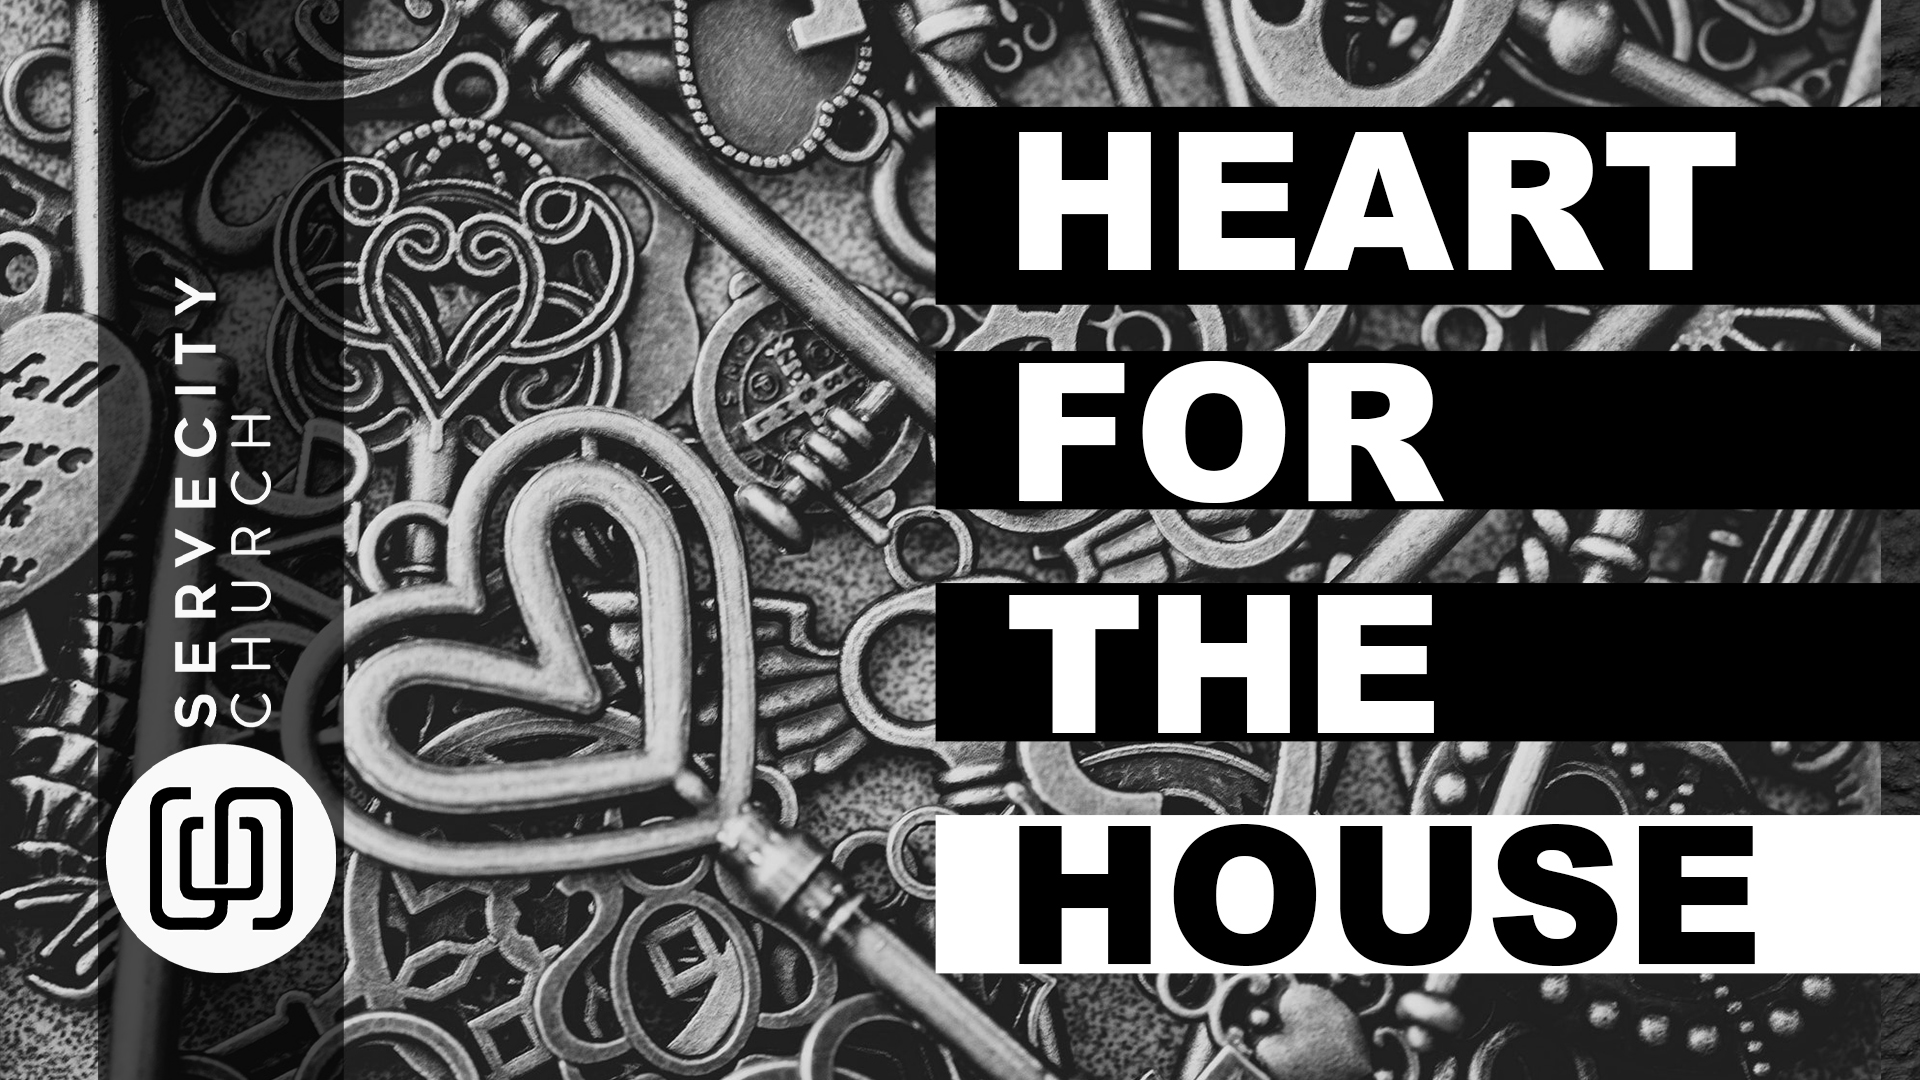 Heart For The House (Slide).jpg